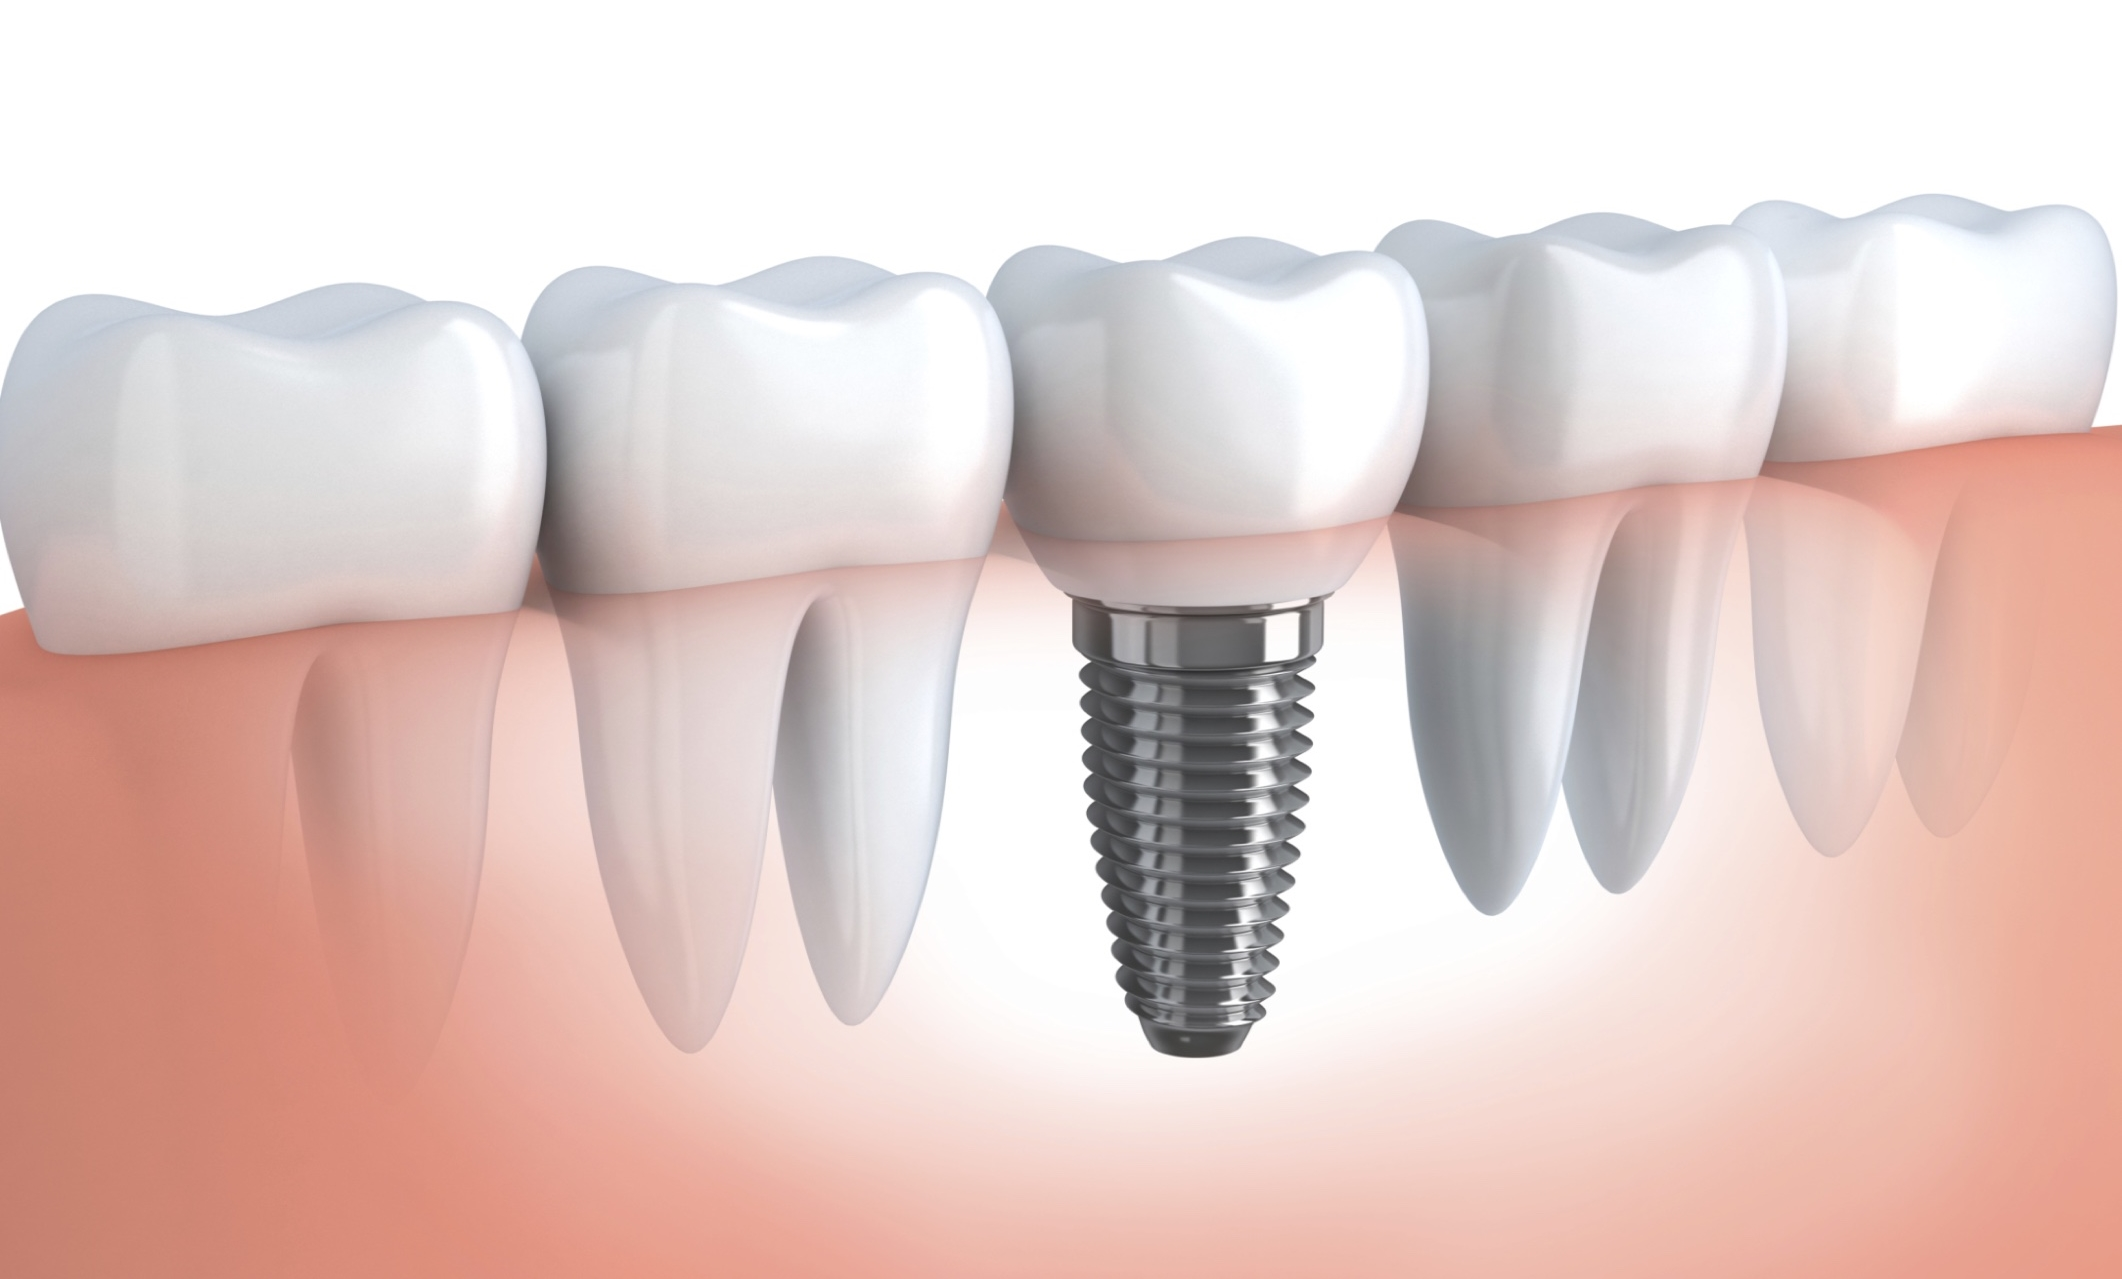 Town Center Dentistry has the best dental implant specialists in San Diego. Replace lost teeth due to injury, decay or gingivitis.